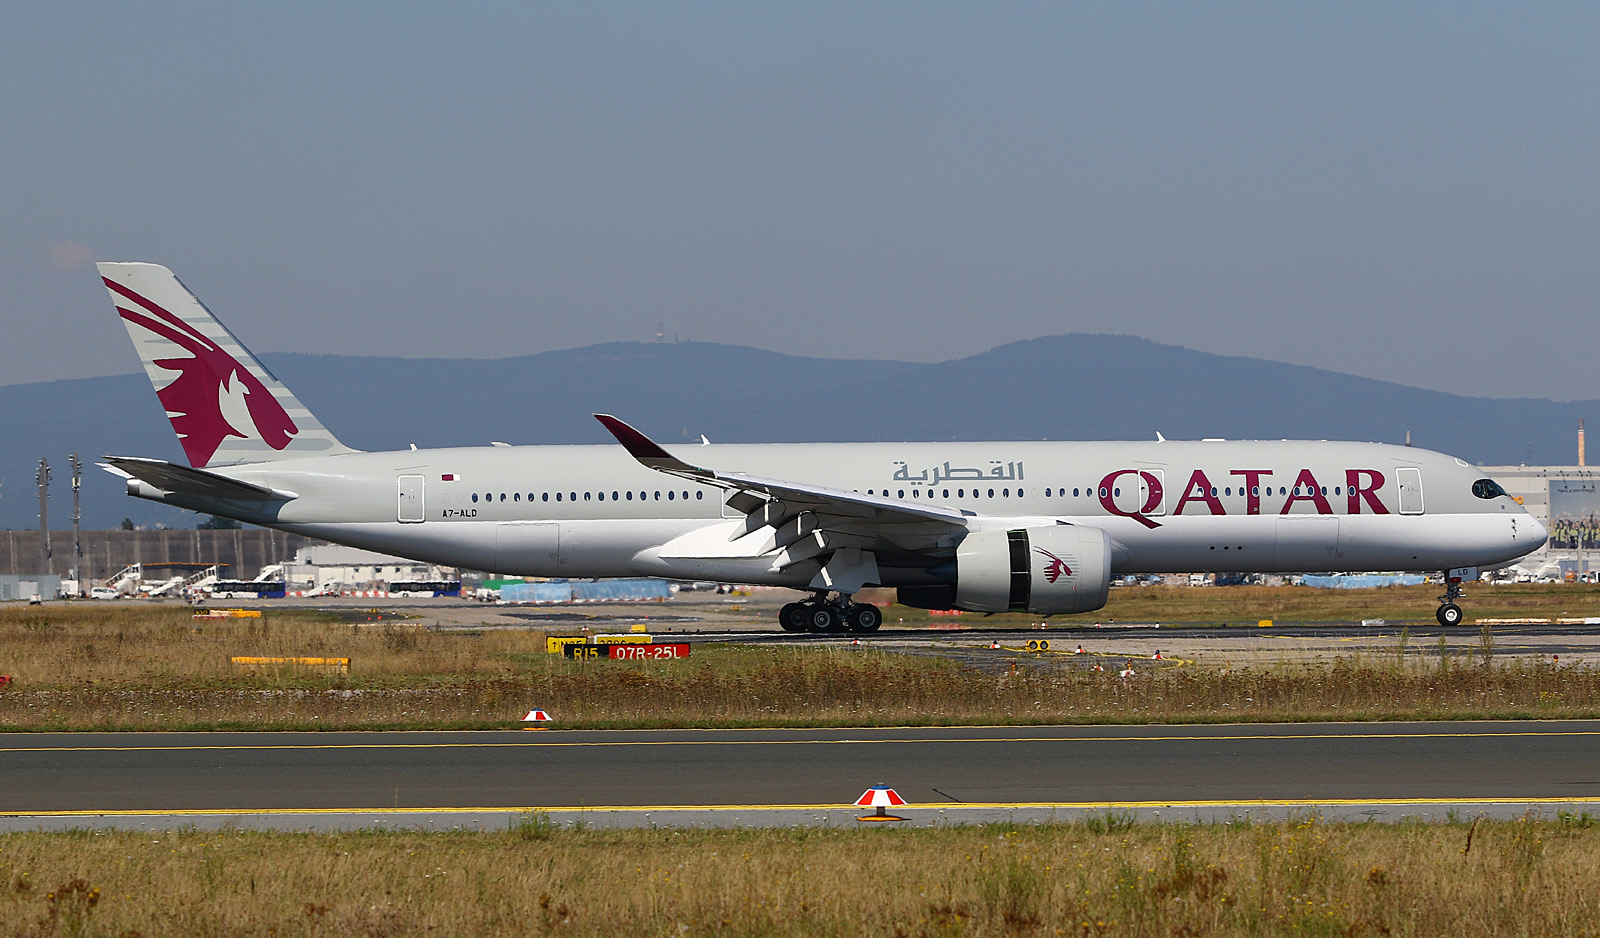 Qatar Airways A350 at Frankfurt Airport